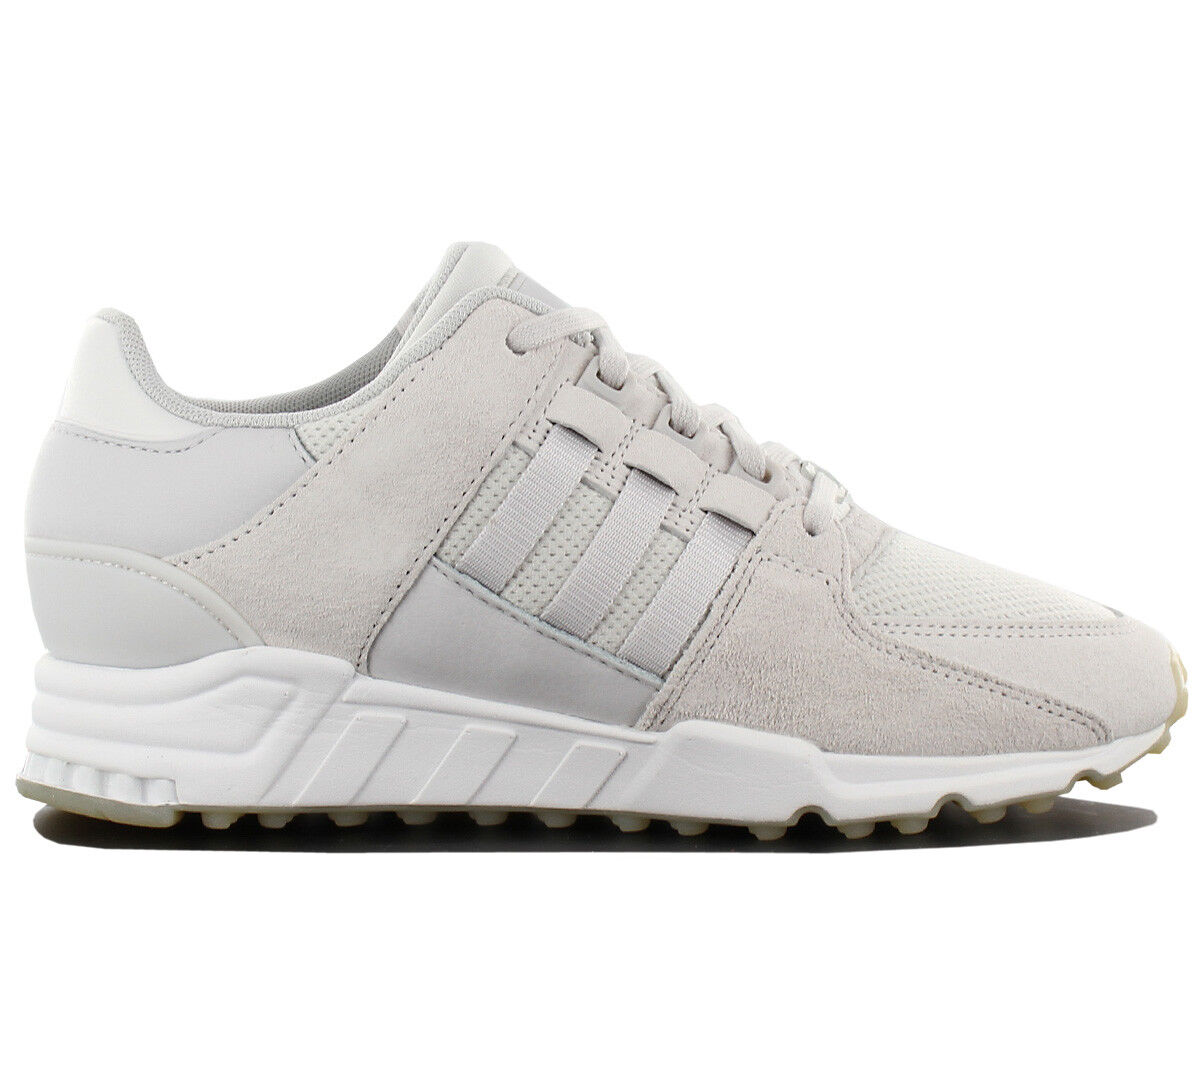 Adidas ORIGINALS EQT EQUIPMENT SUPPORT RF W Womens Sneakers shoes by9107 NEW